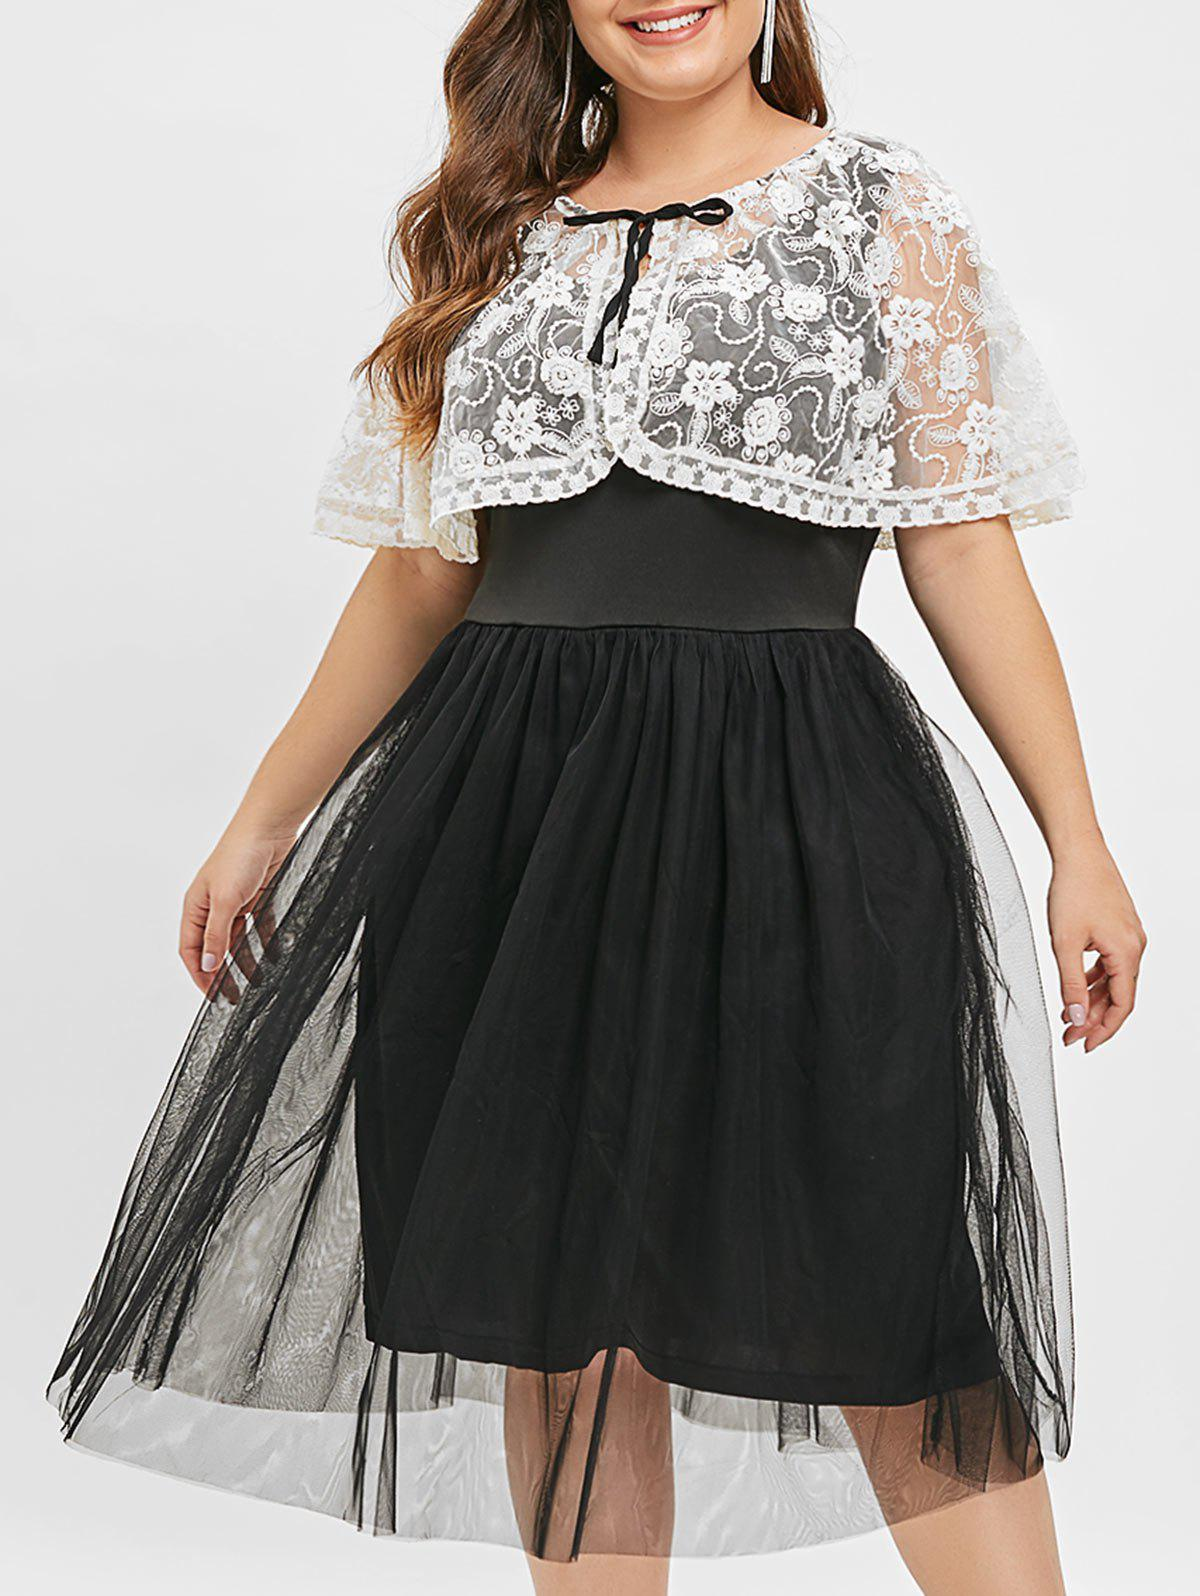 Plus Size Mesh Vest Dress with Embroidery Top - BLACK 3X